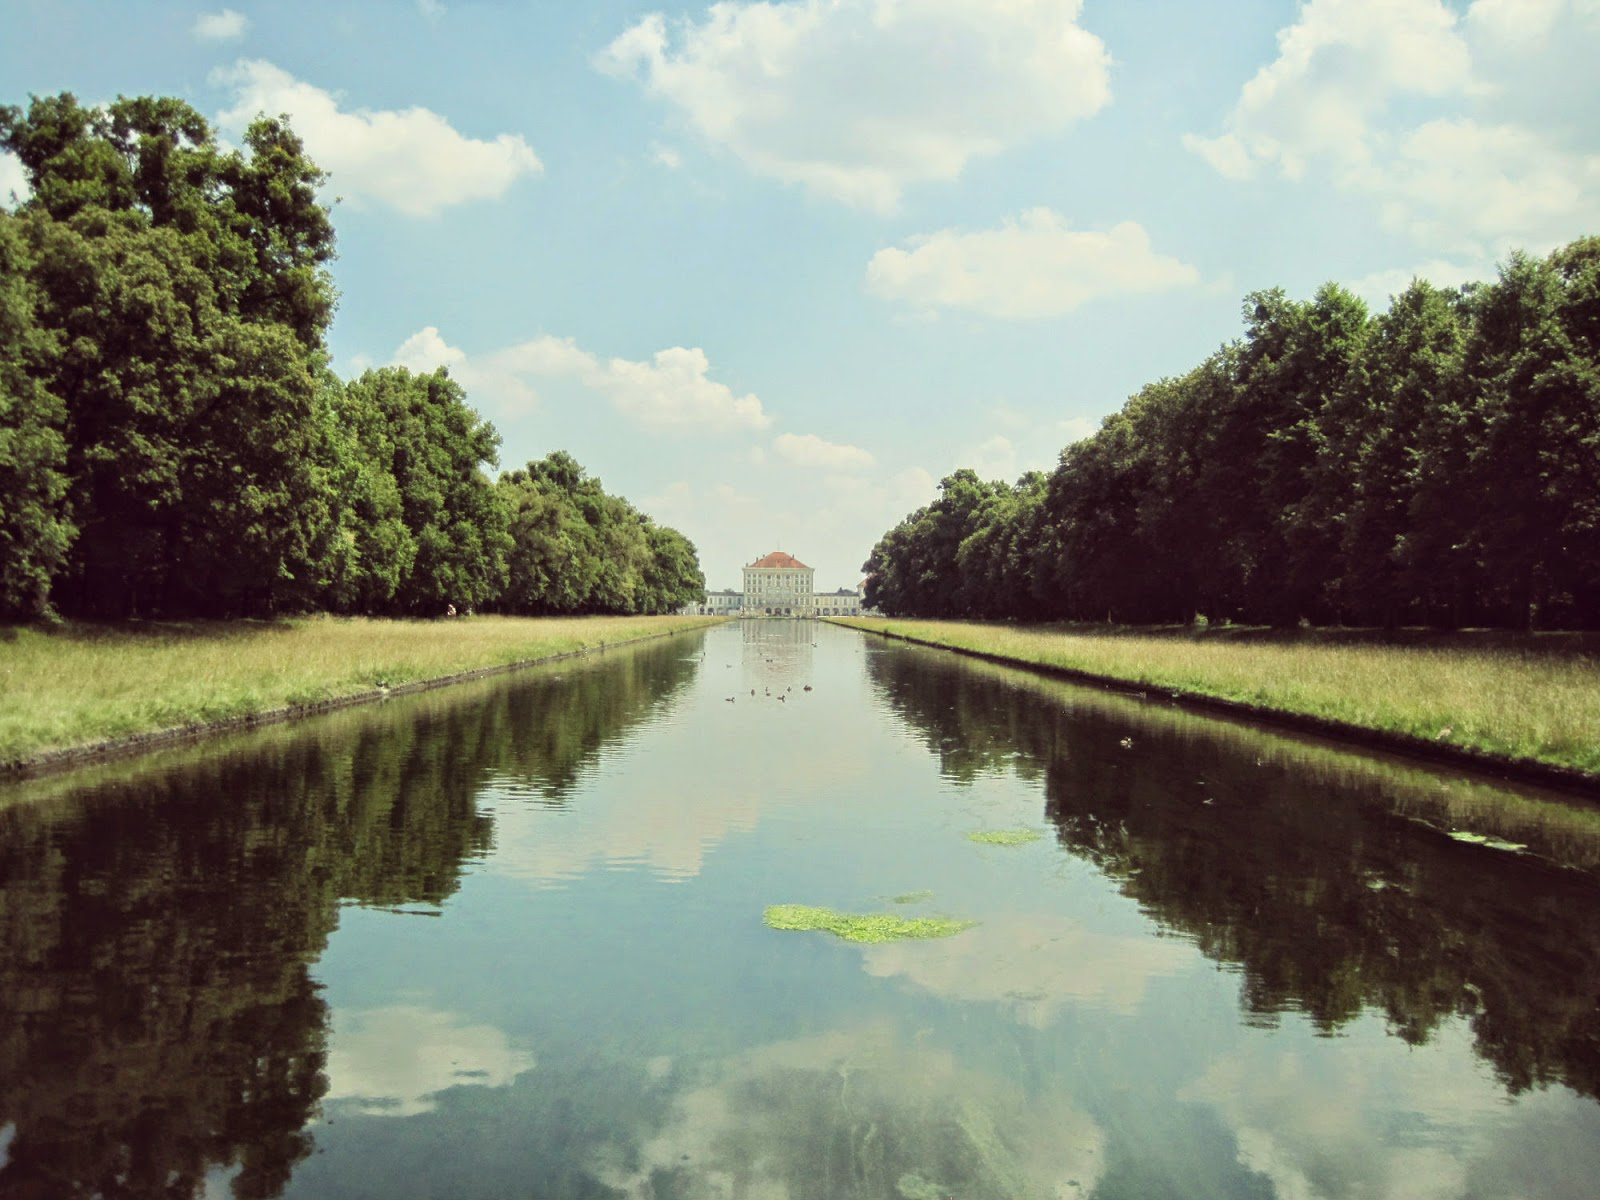 Nymphenburg Palace Gardens and Canal